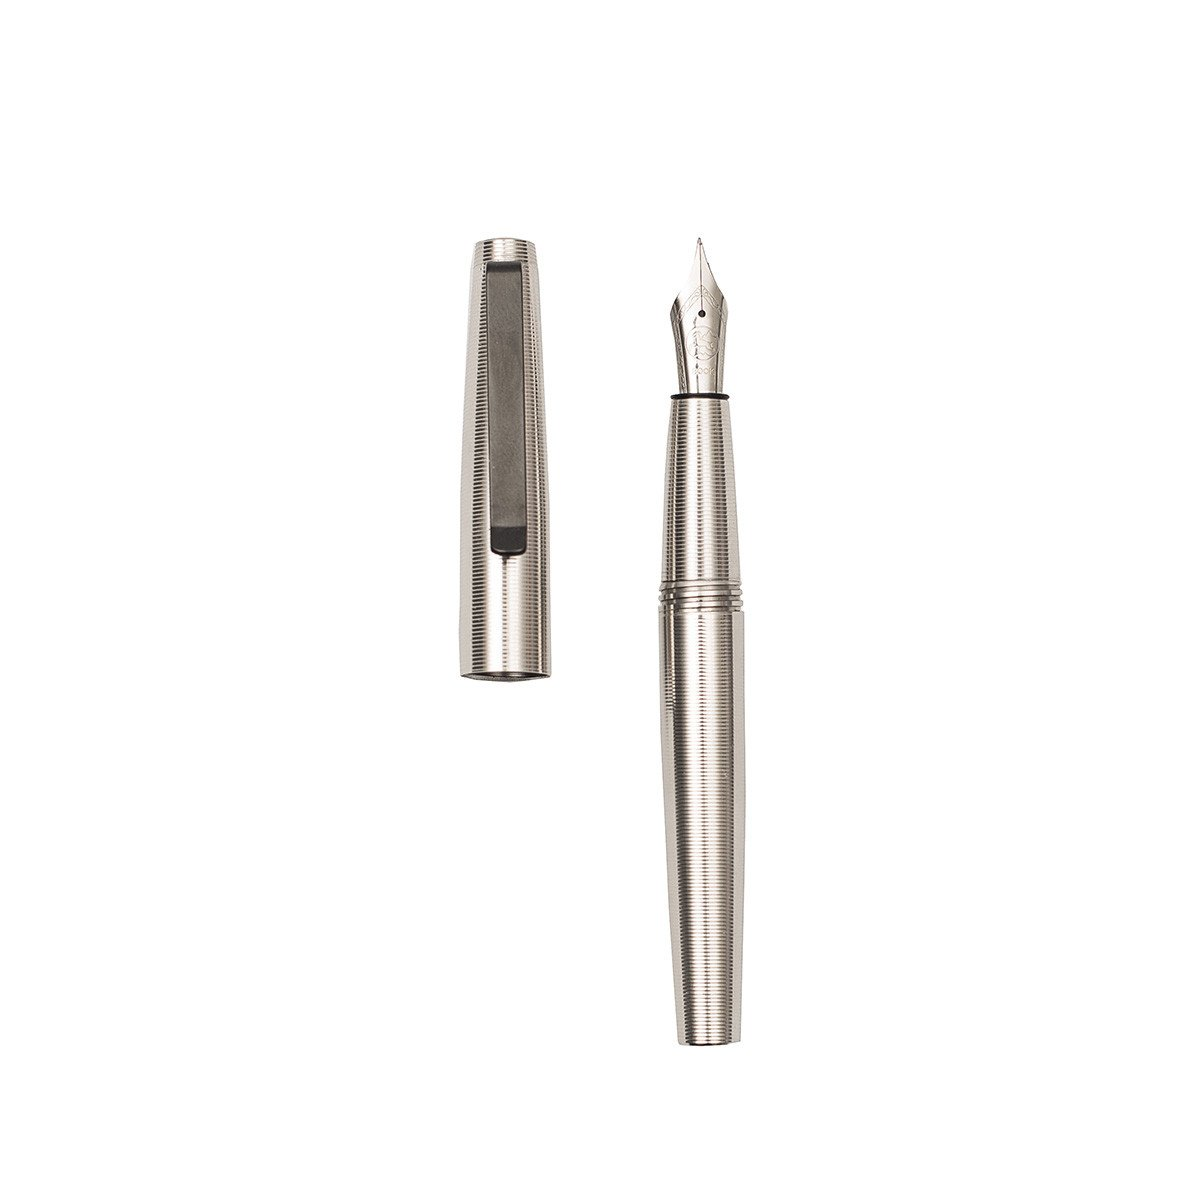 Gist Fountain Pen -  Stainless Steel